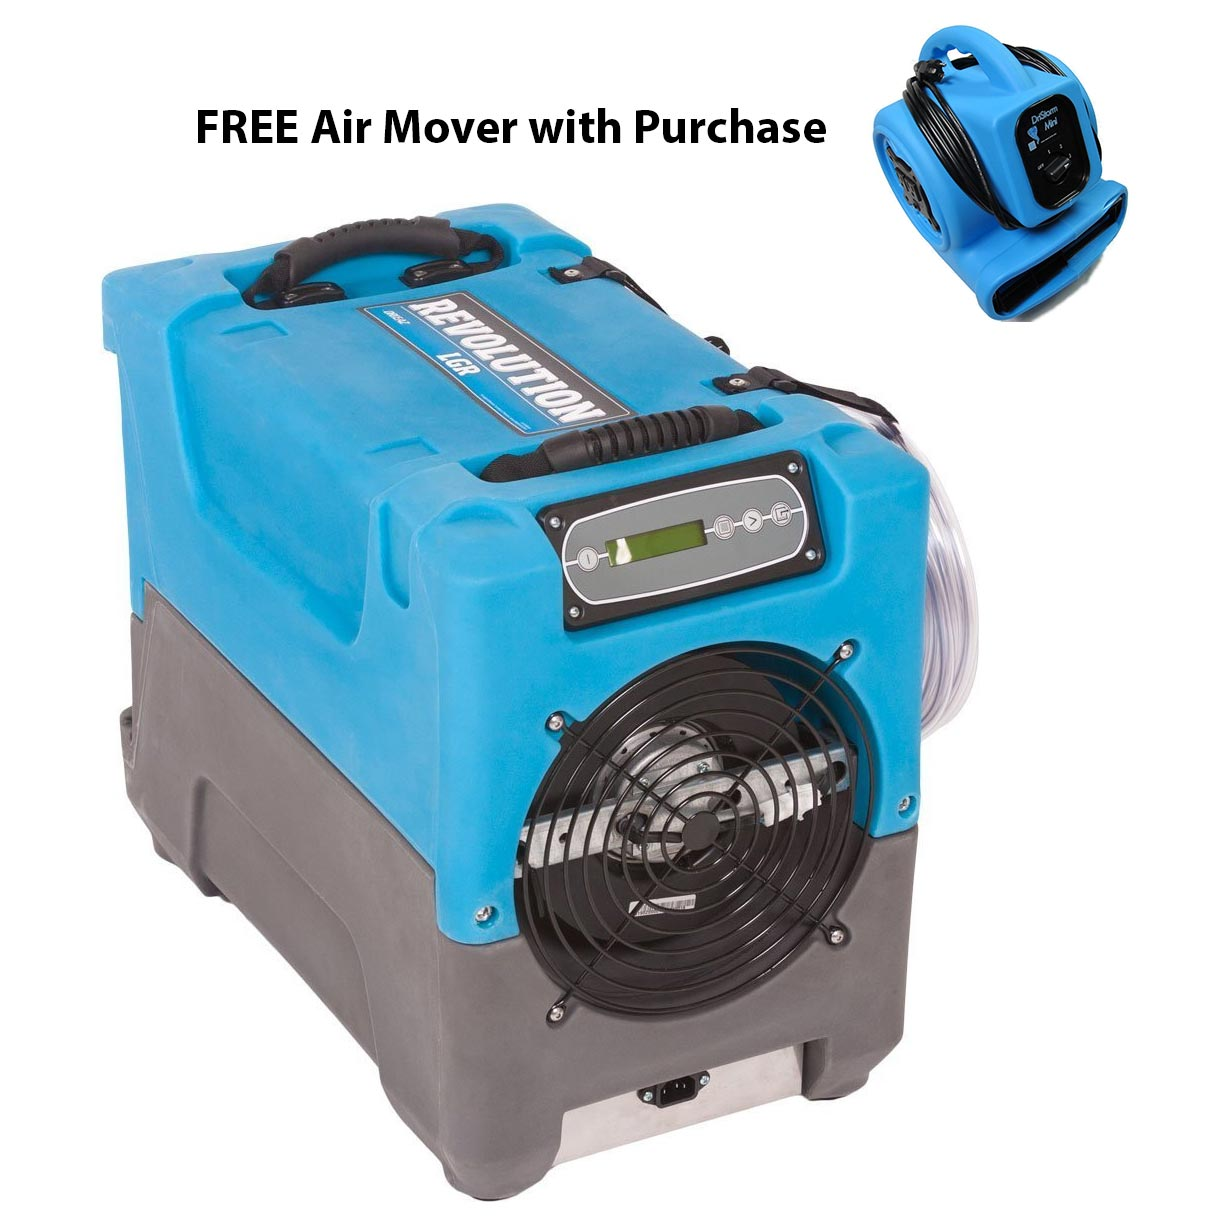 Drieaz F413 REVO Revolution LGR Compact Craw Space Industrial Dehumidifier FREE Air Mover FREE Shipping